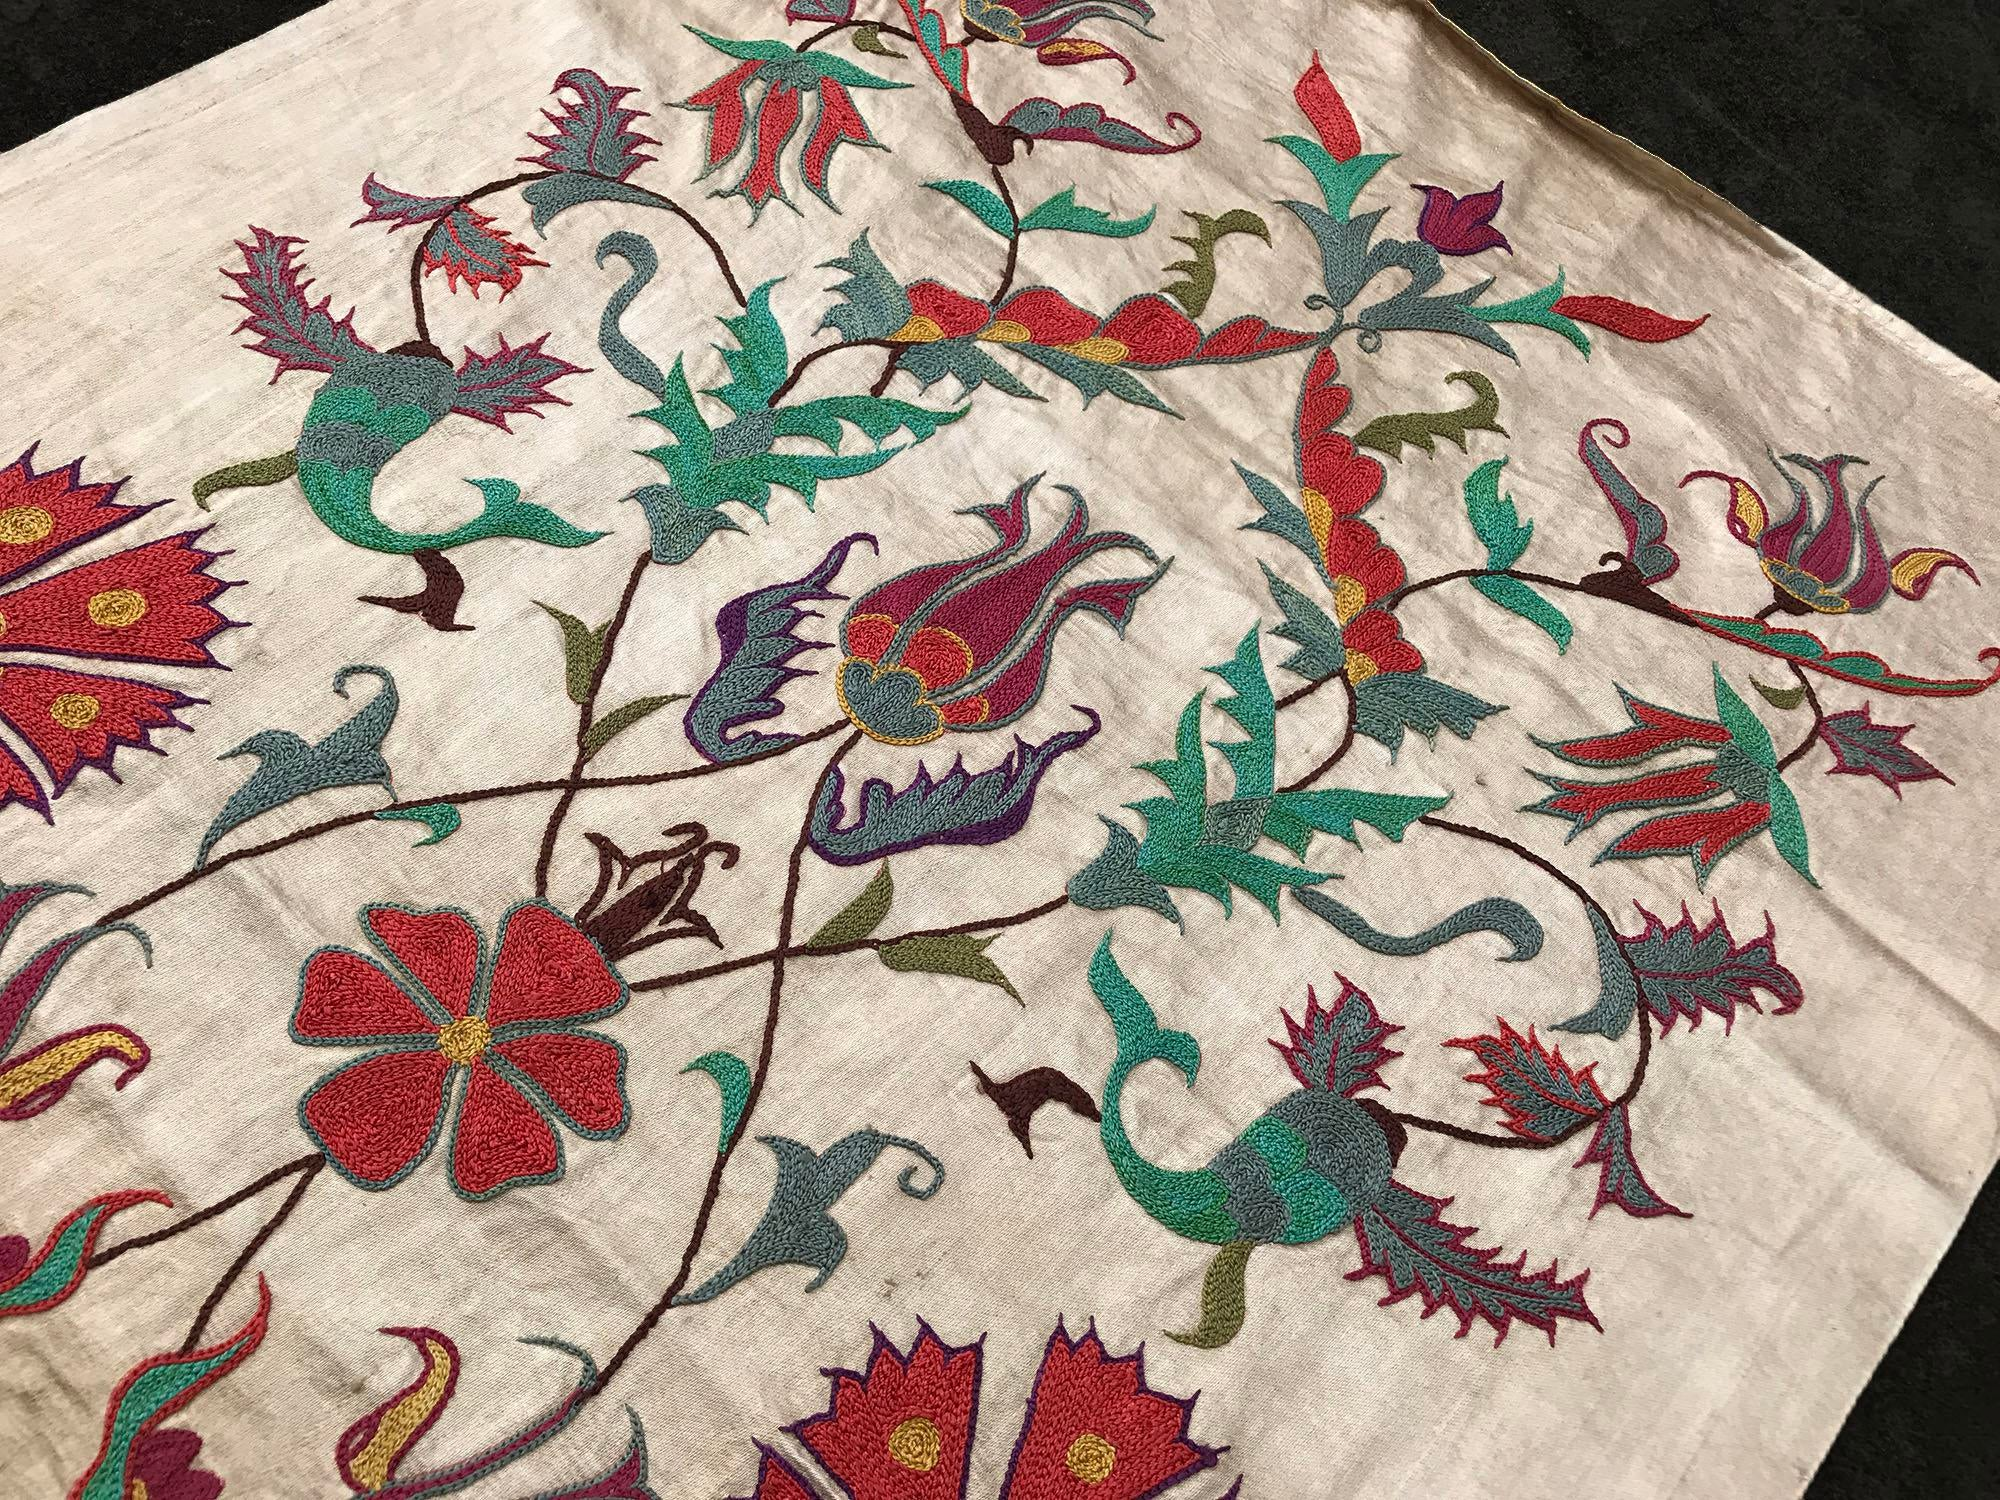 Delicieux Clove Patterns Pure Silk Suzani Runner Handmade Suzani Tablecloth For Sale    Image 4 Of 6